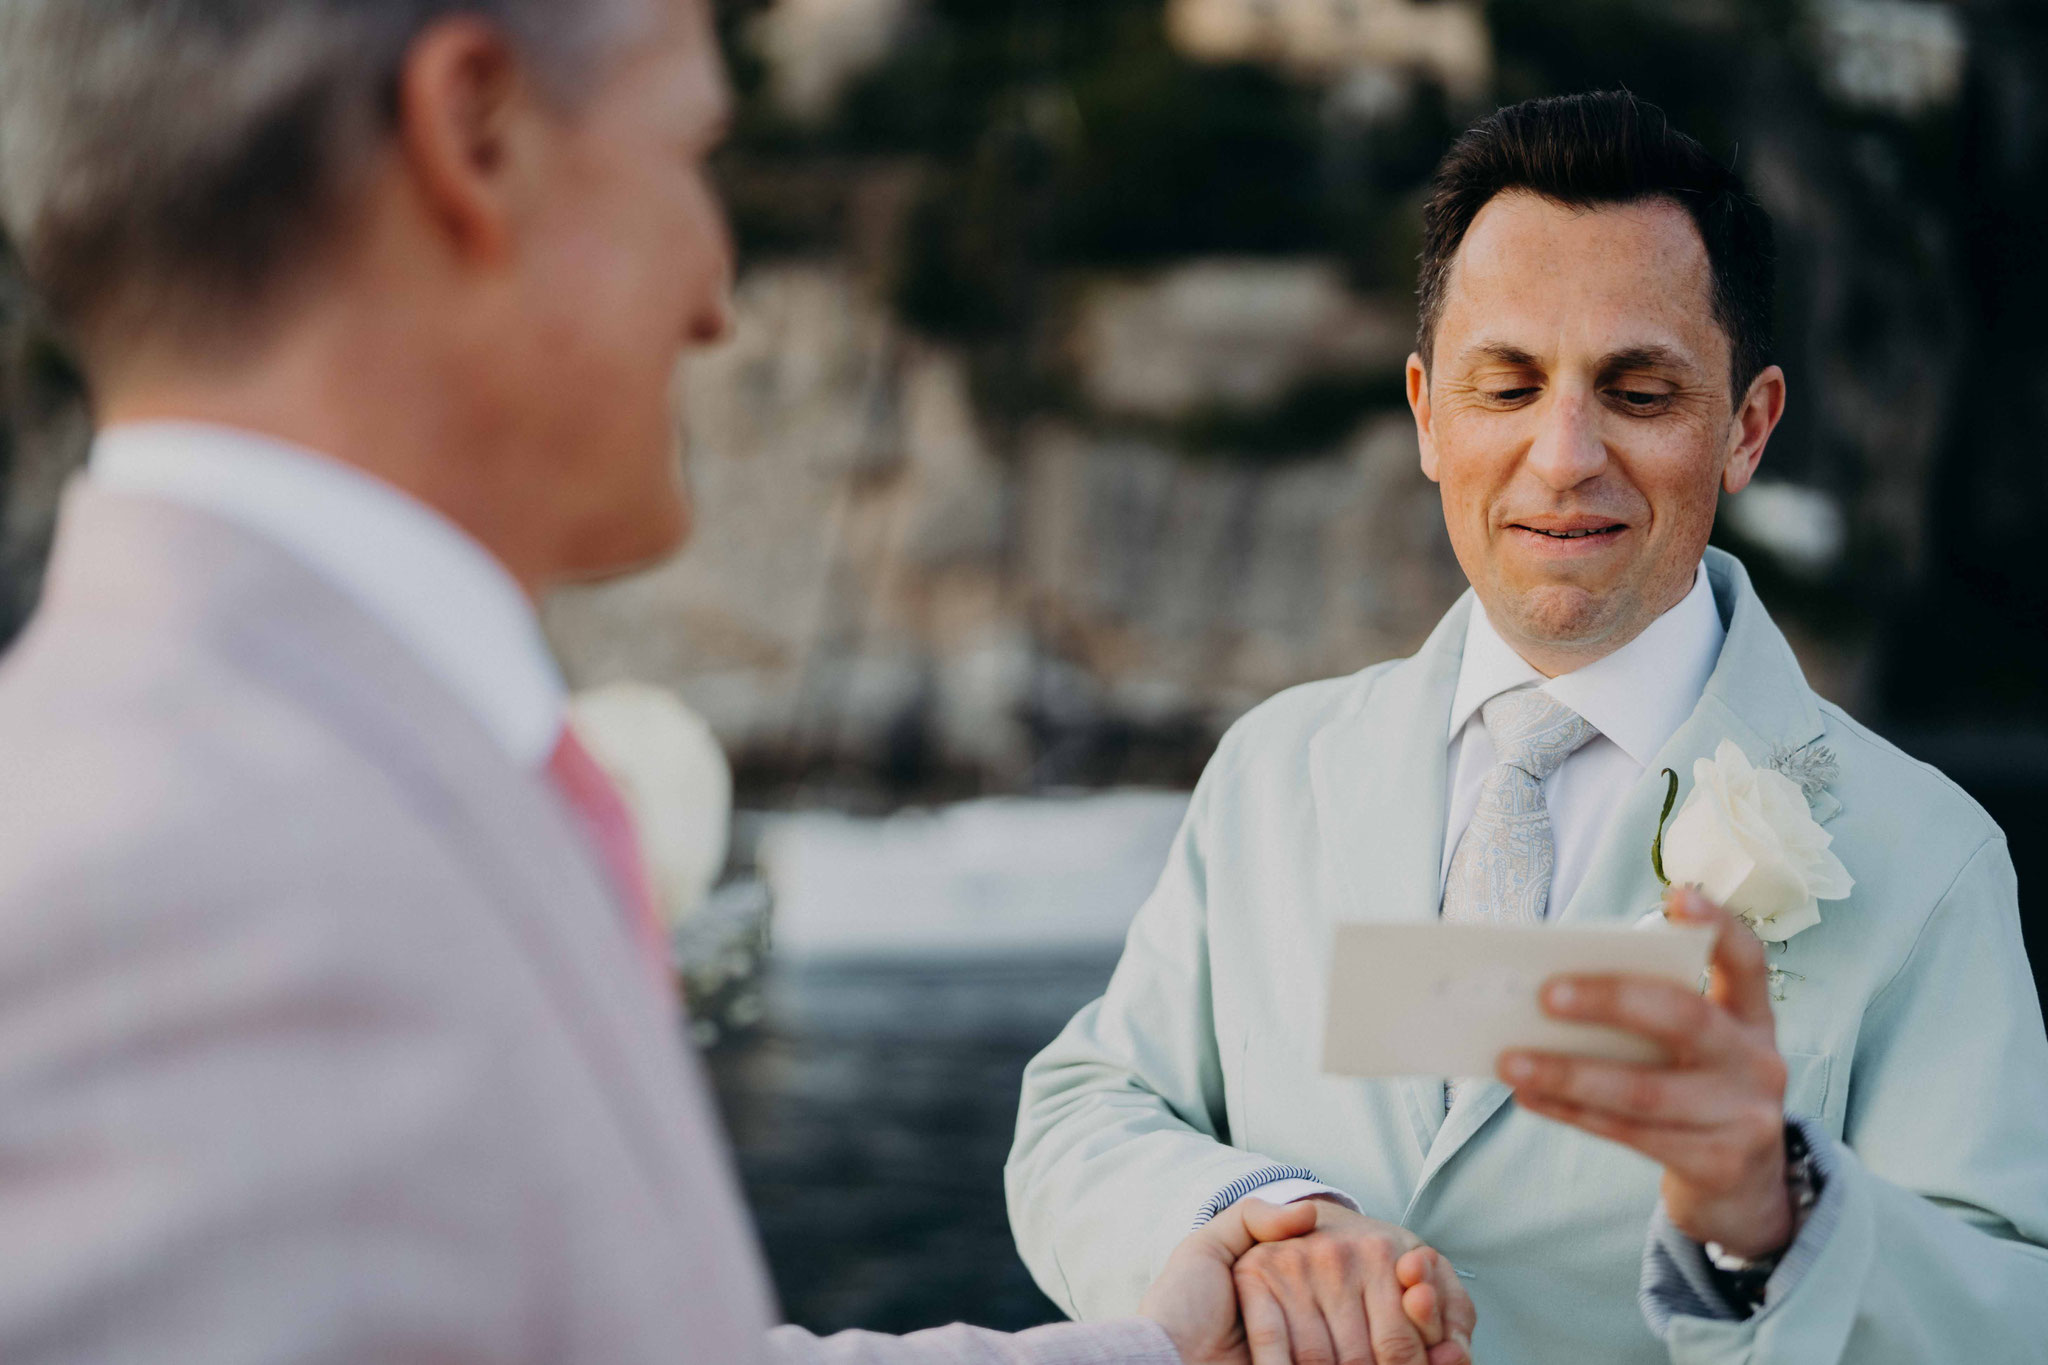 gay_wedding_positano_28